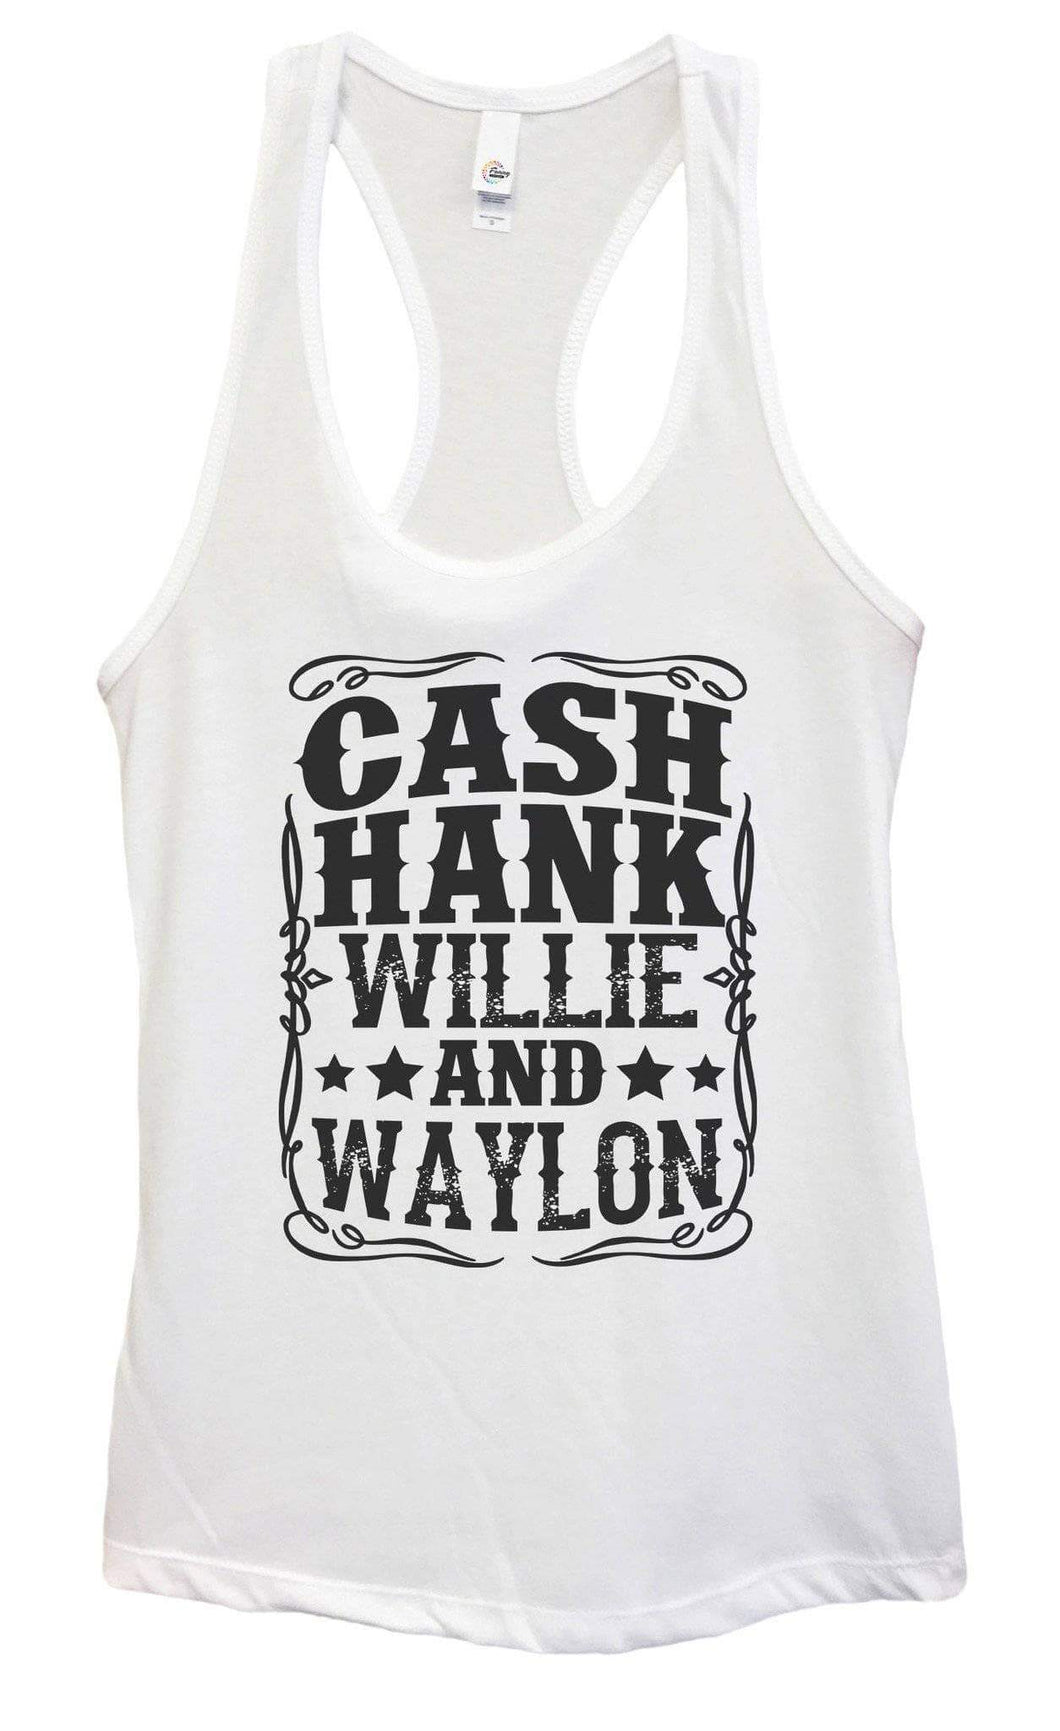 Womens Cash Hank Willie And Waylon Grapahic Design Fitted Tank Top Small Womens Tank Tops White